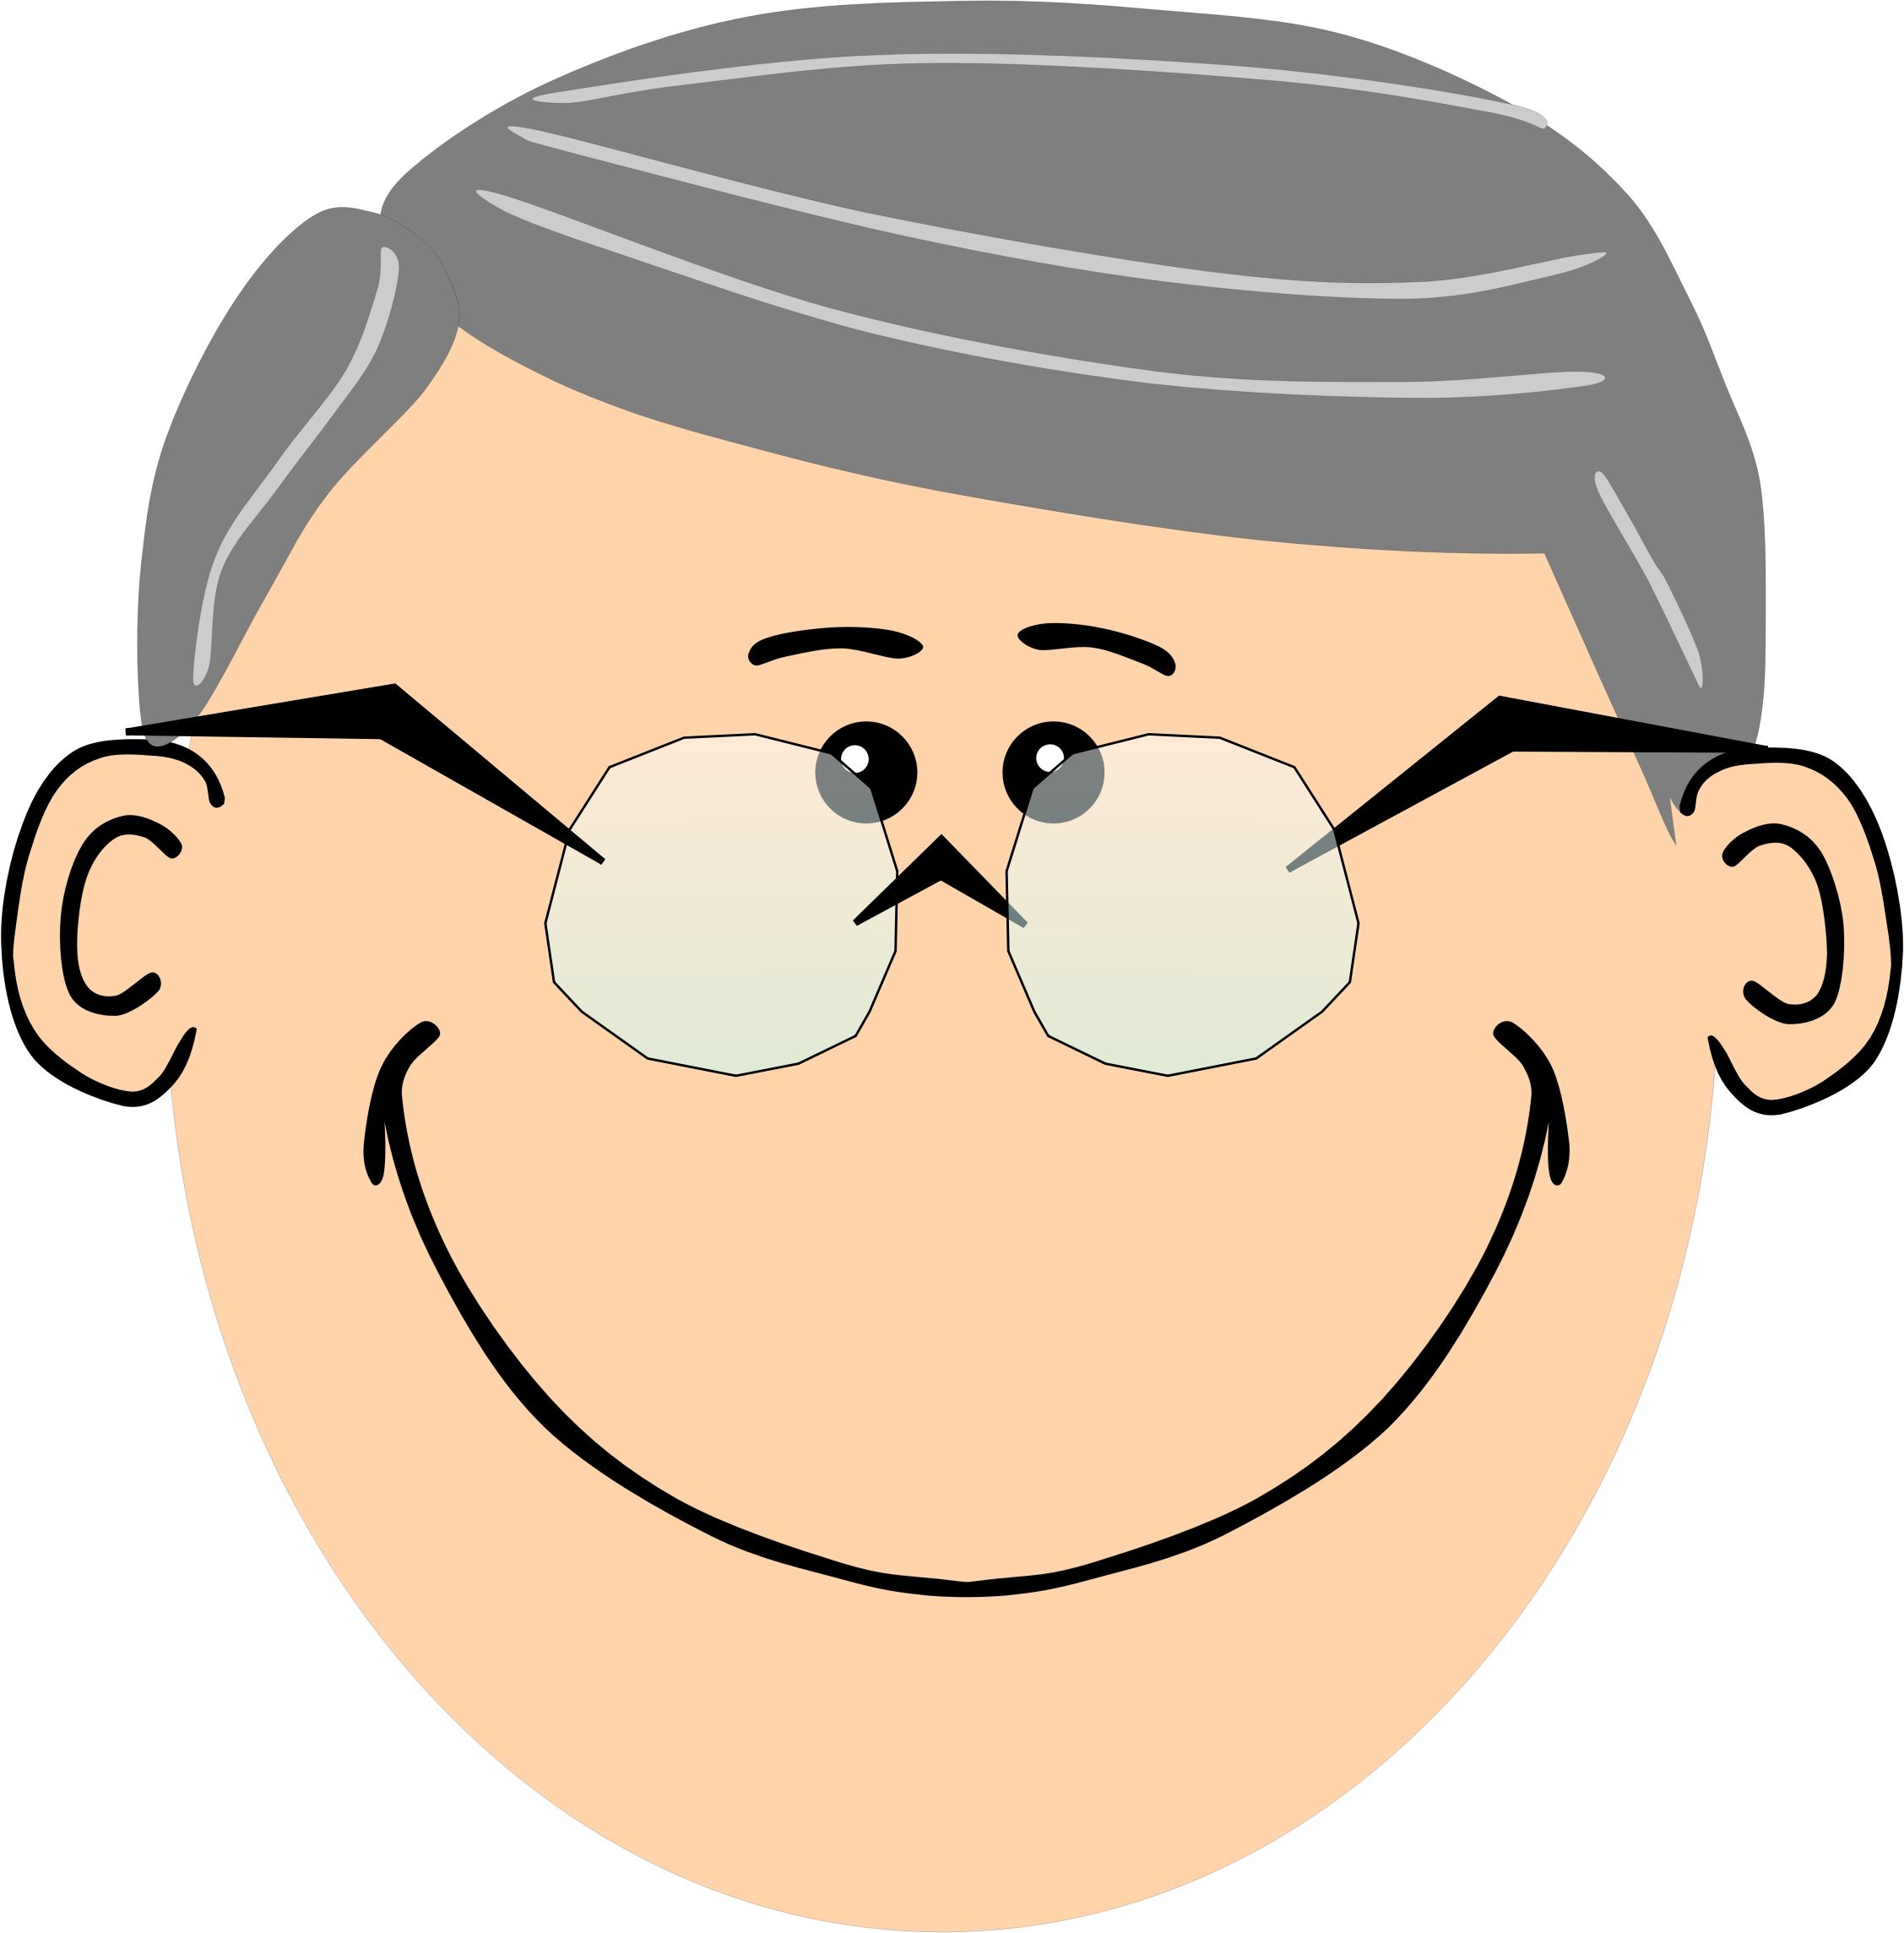 Clip art grandpa clipart images gallery for free download.